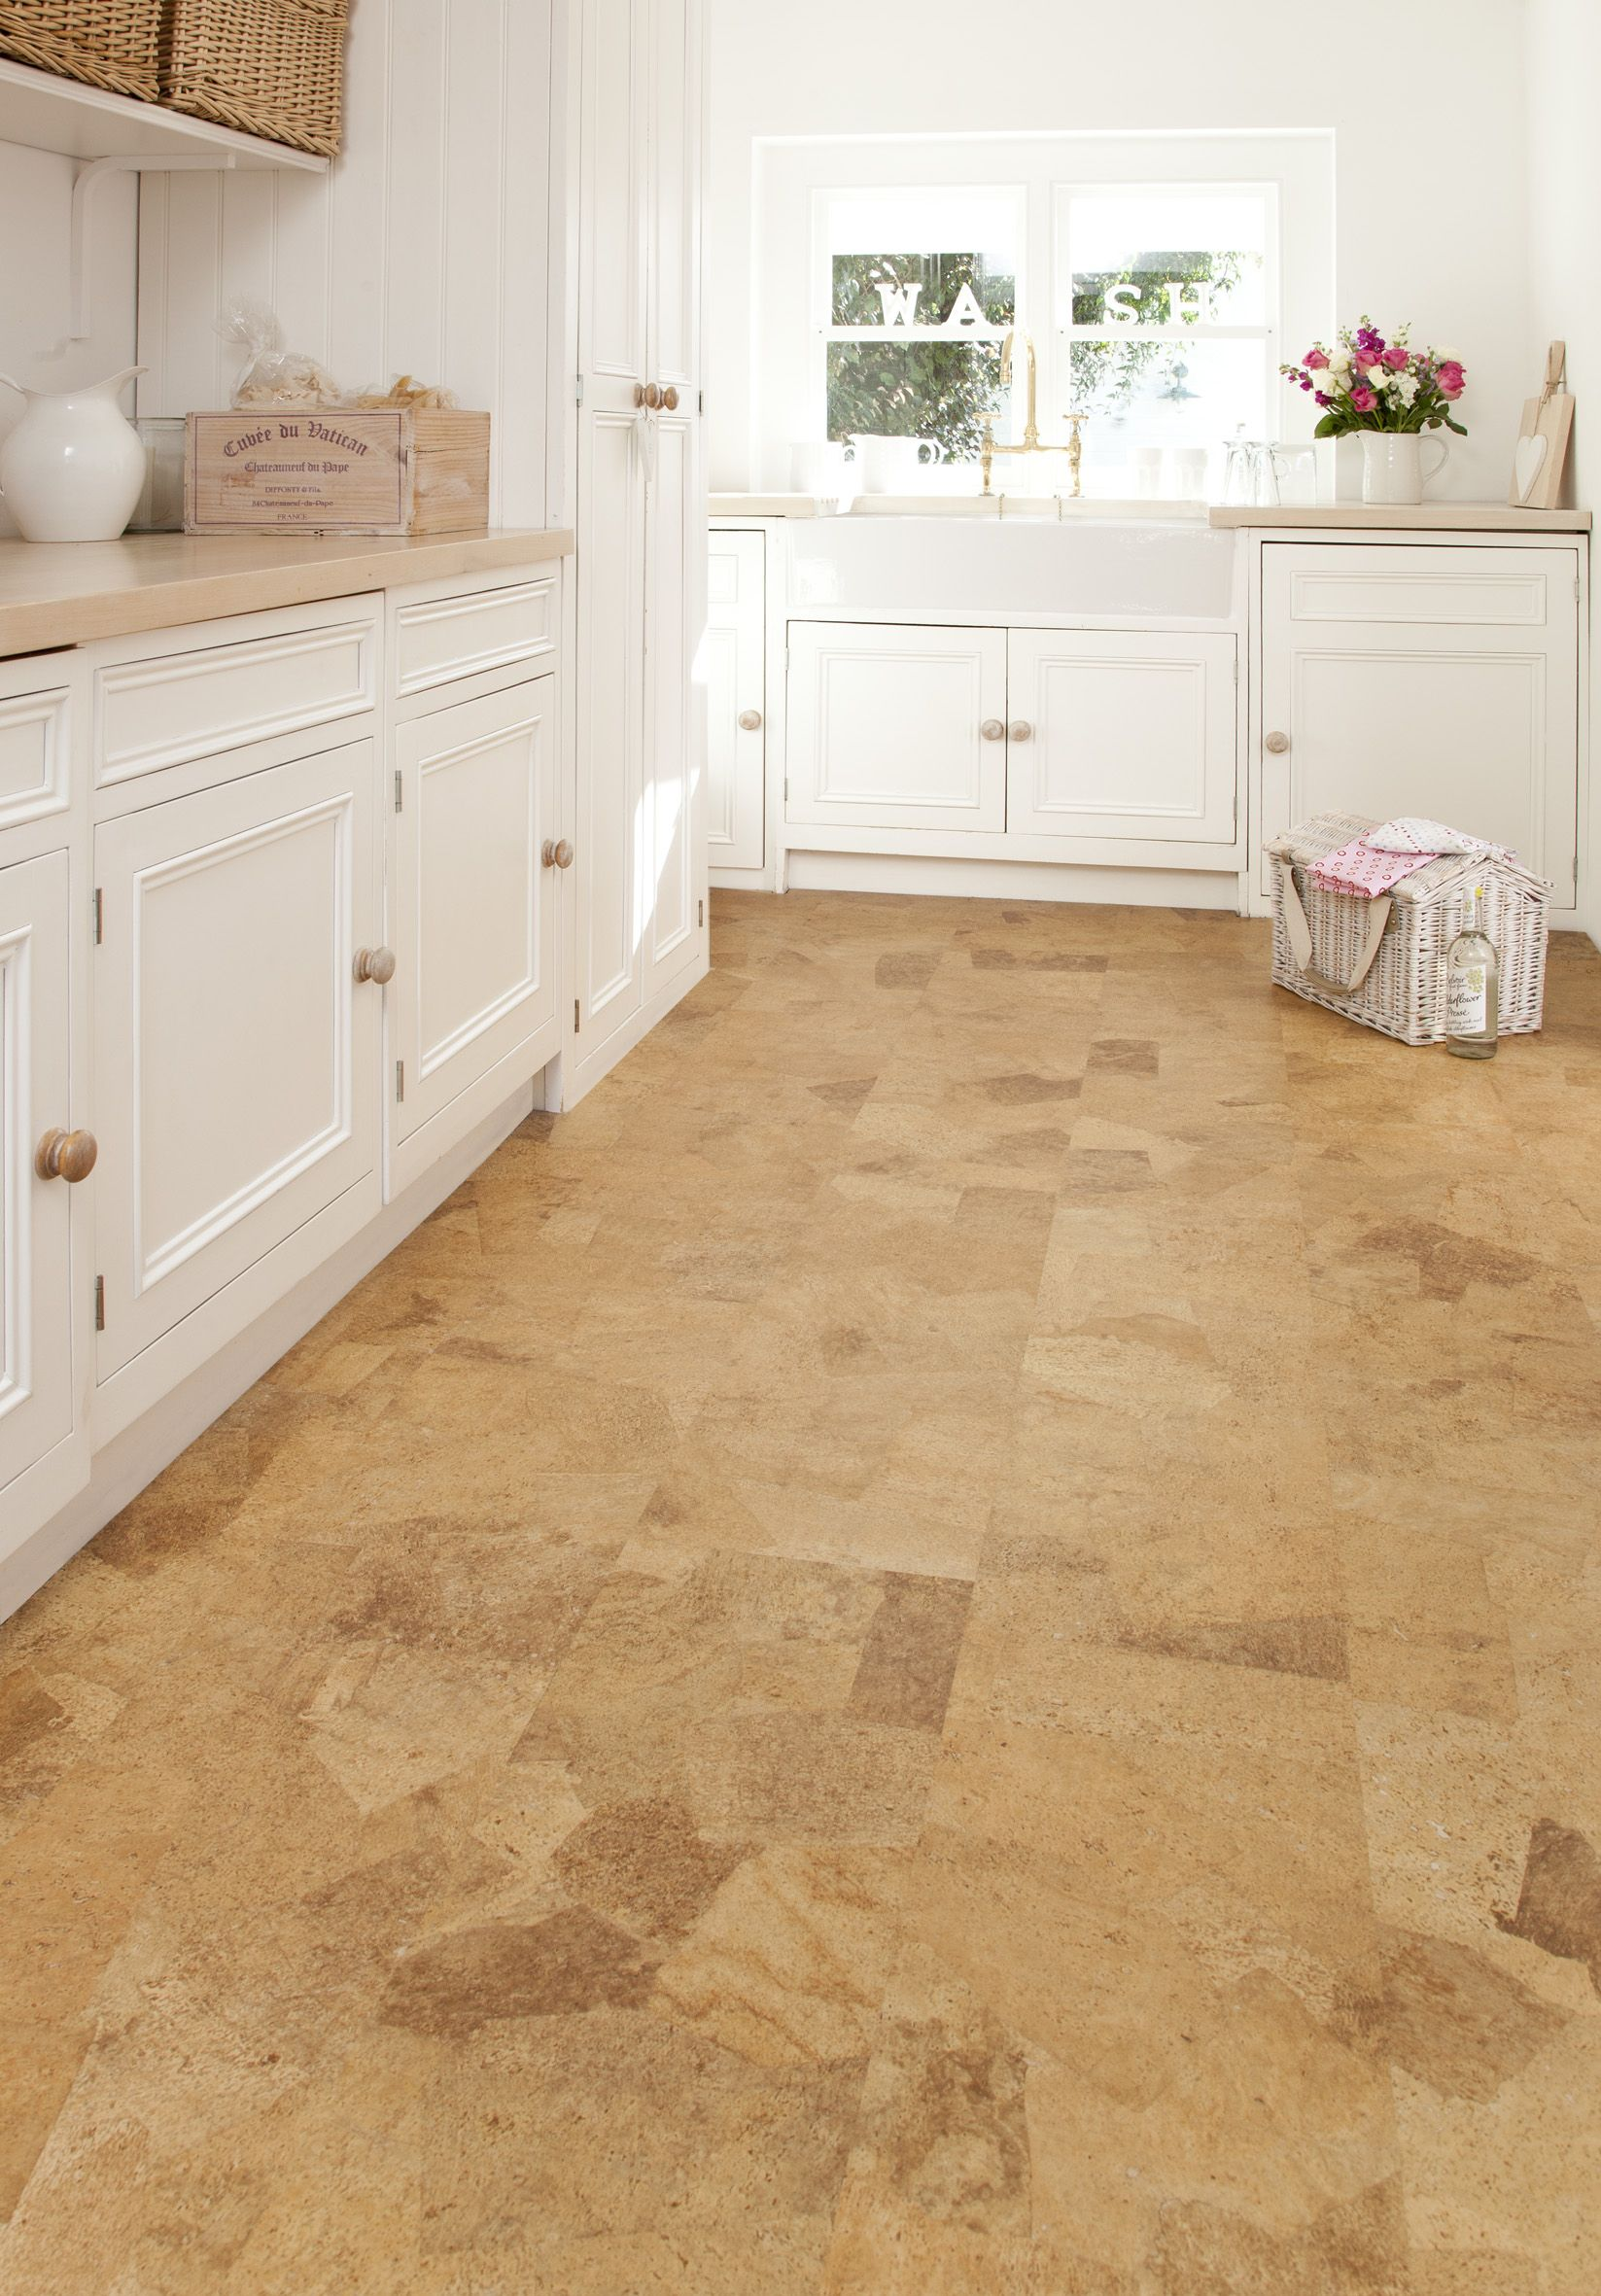 30 floor tile designs for every corner of your home cork floor kitchen dailygadgetfo Choice Image